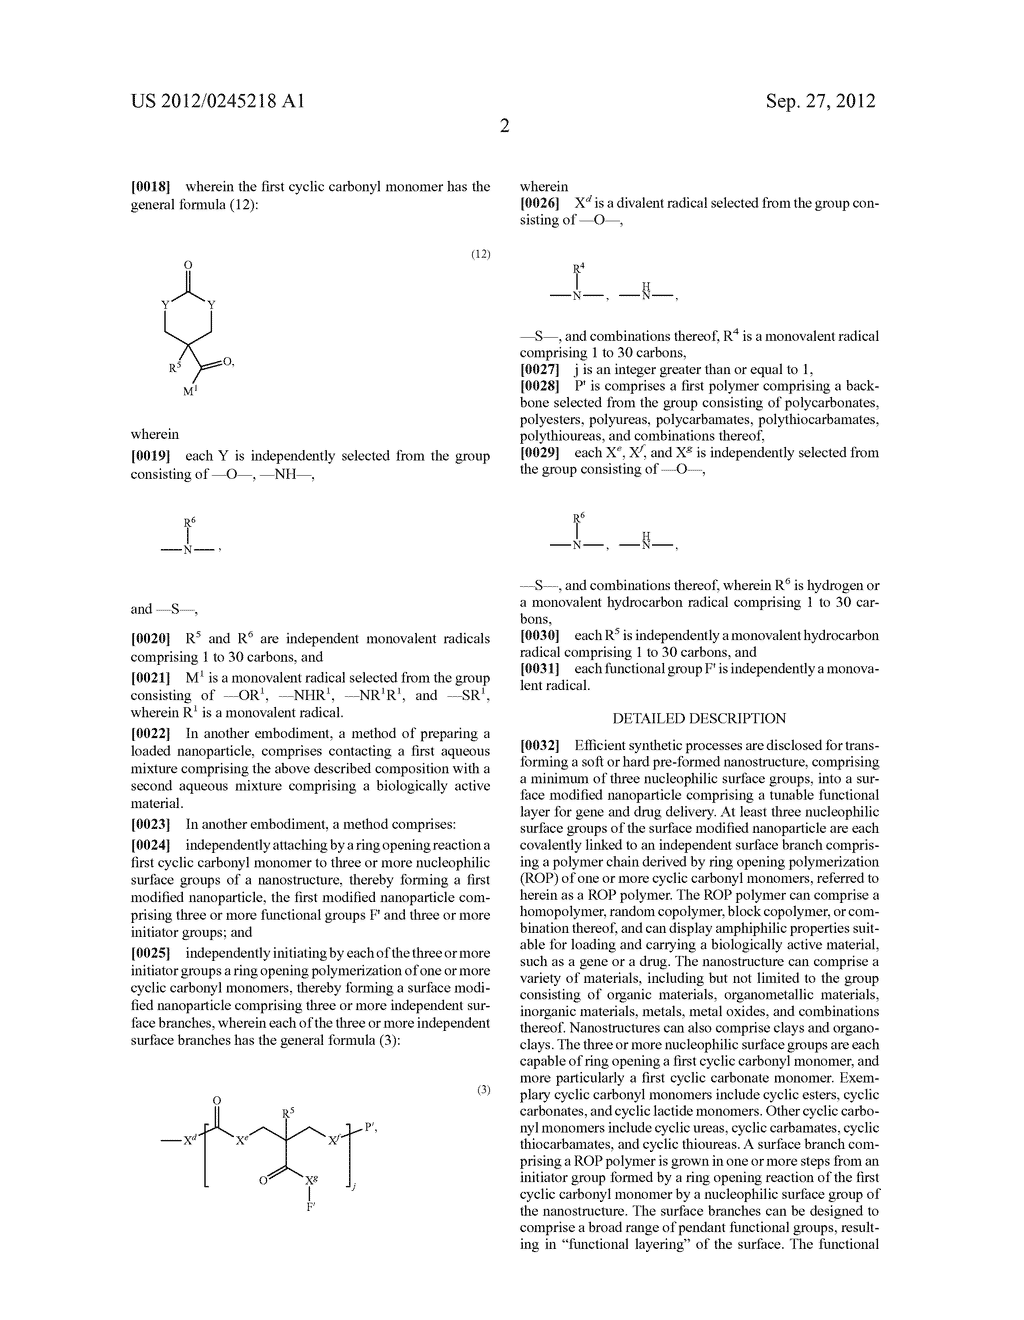 SURFACE MODIFIED NANOPARTICLES, METHODS OF THEIR PREPARATION, AND USES     THEREOF FOR GENE AND DRUG DELIVERY - diagram, schematic, and image 03